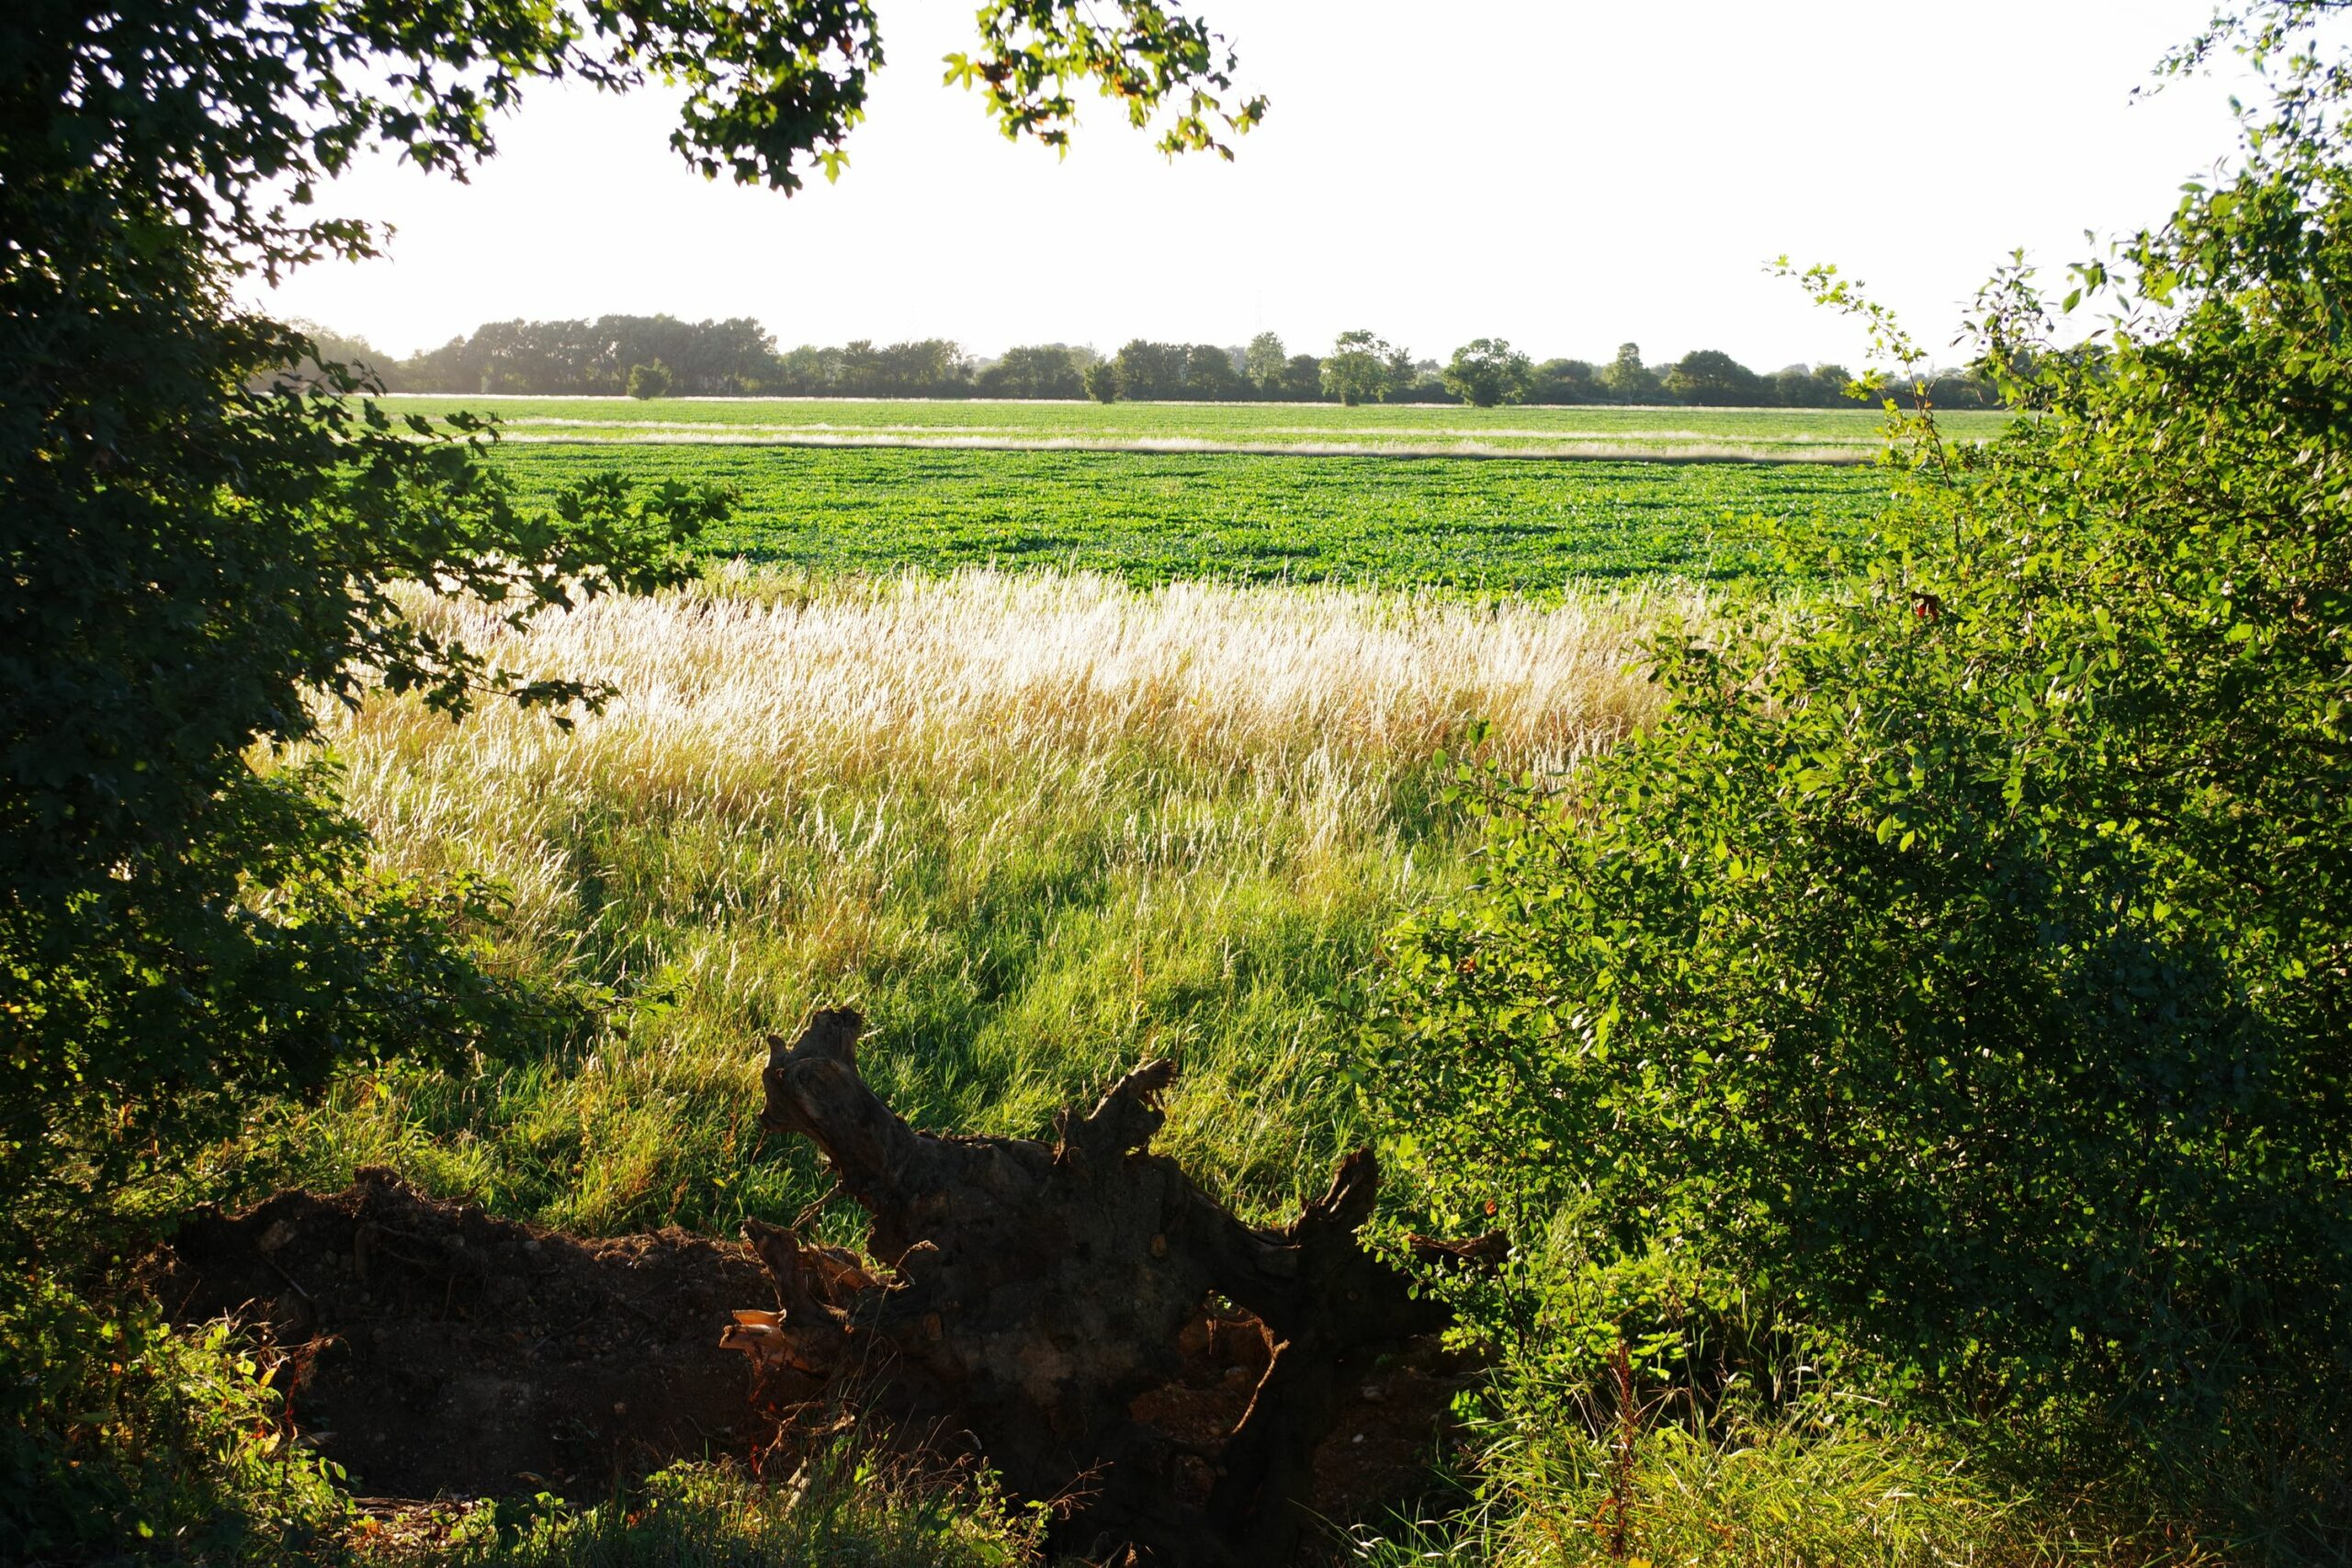 agricultural fields viewed through a gap in a line of trees and a hedge